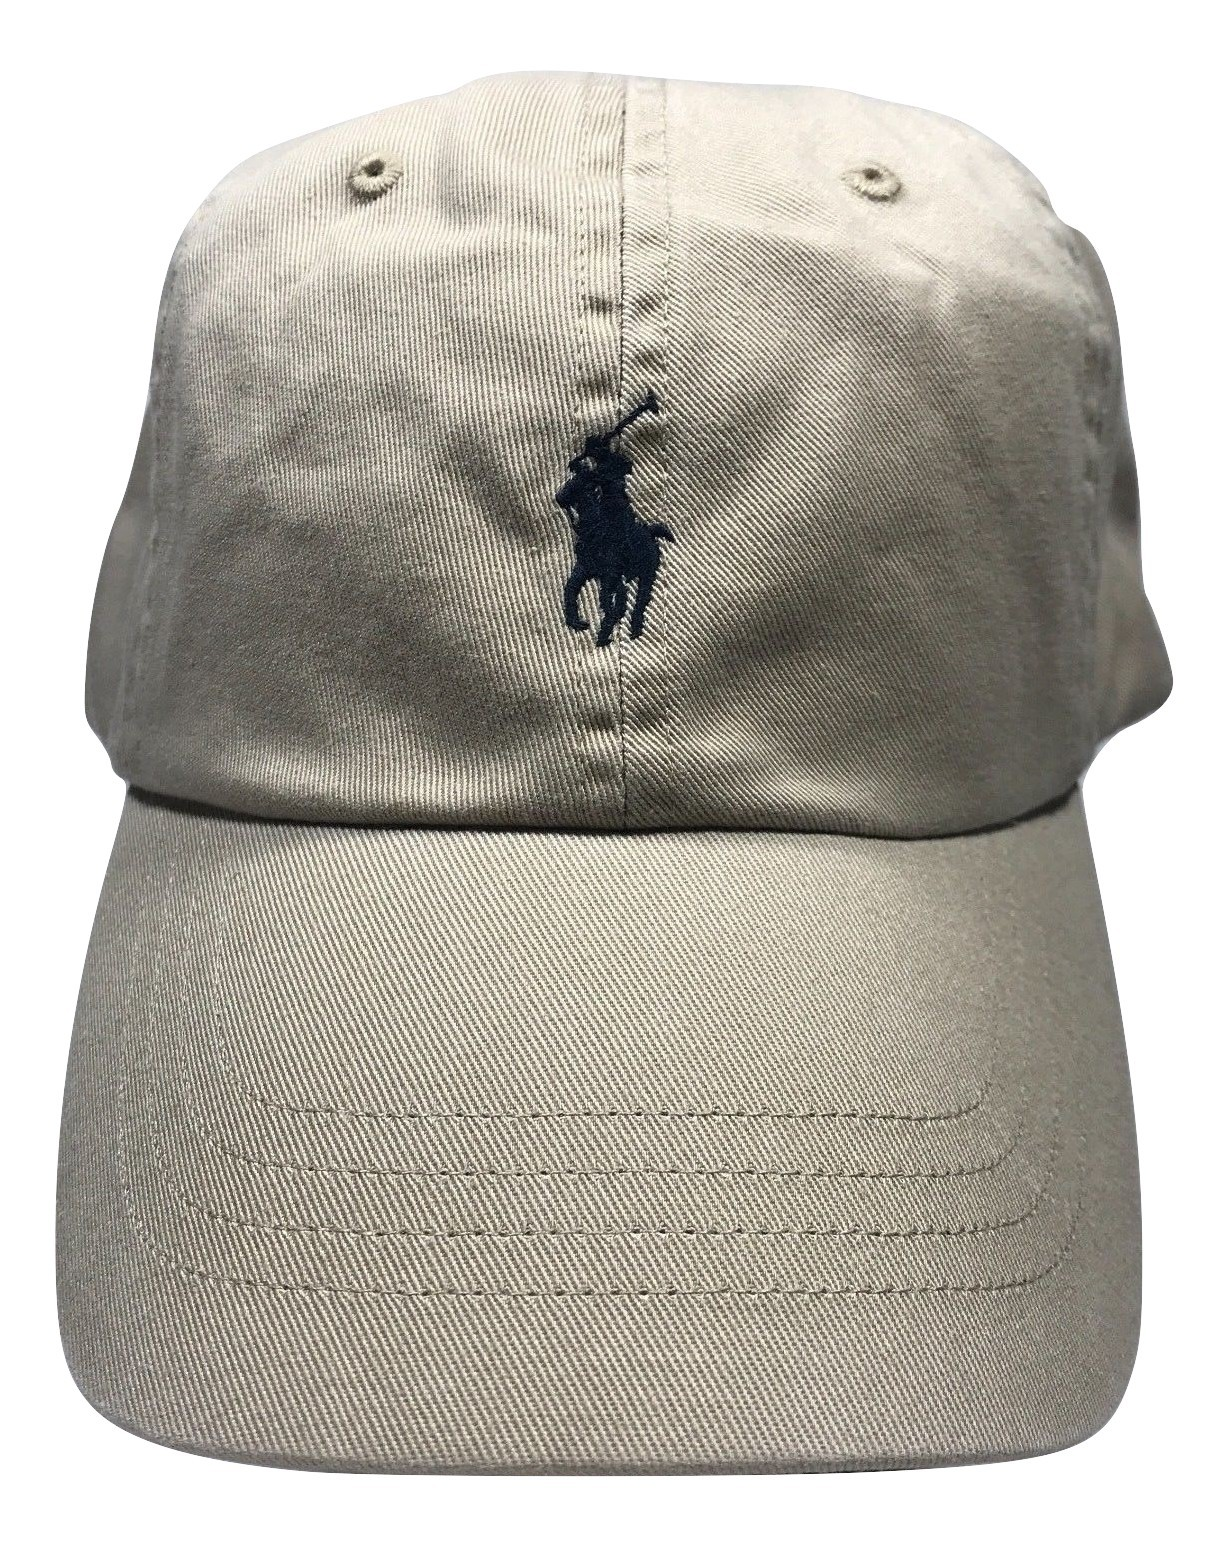 fdb85e89f23 Polo Ralph Lauren Men s Baseball Hat With and 50 similar items. Img  6425966423 1536434613